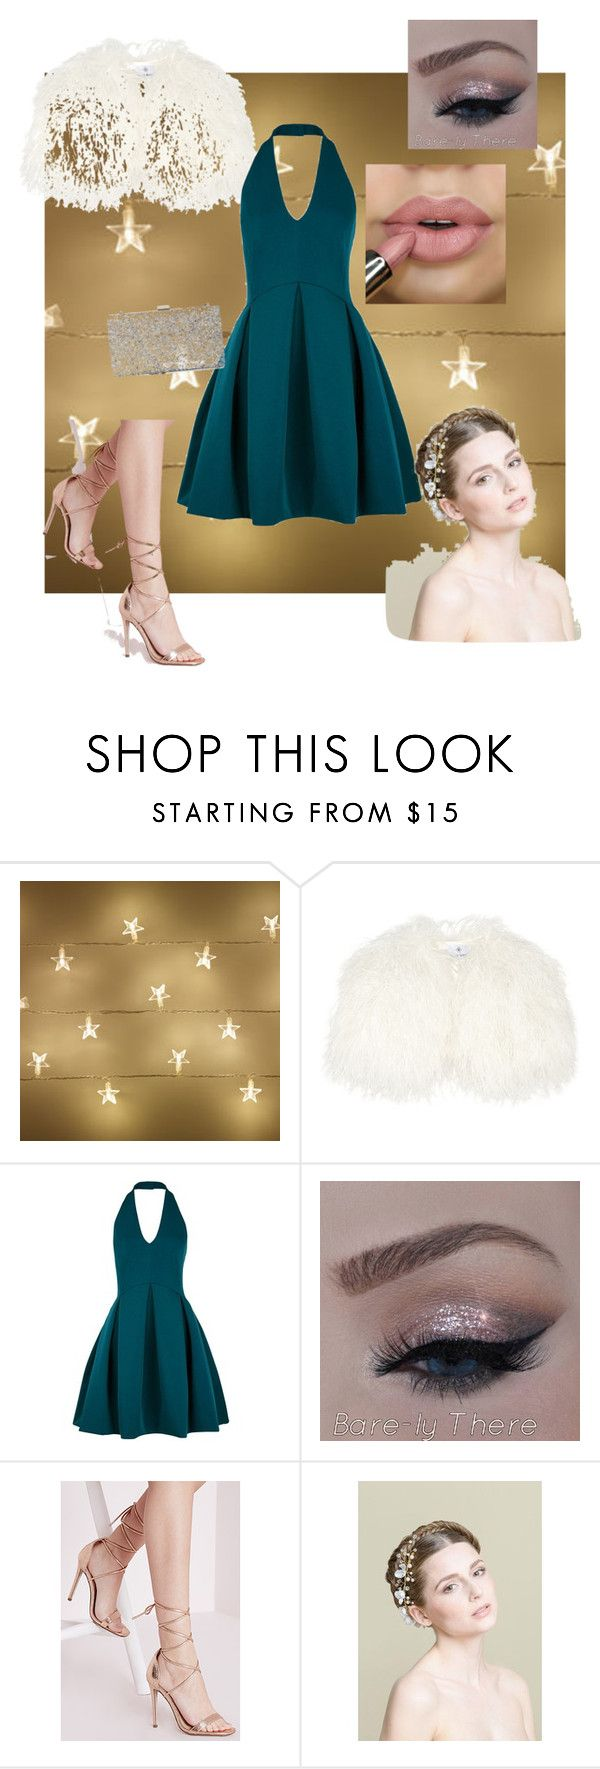 """Christmas day delivery"" by vishious-vbaker ❤ liked on Polyvore featuring Daizy Shely, Halston Heritage, Missguided, women's clothing, women, female, woman, misses and juniors"